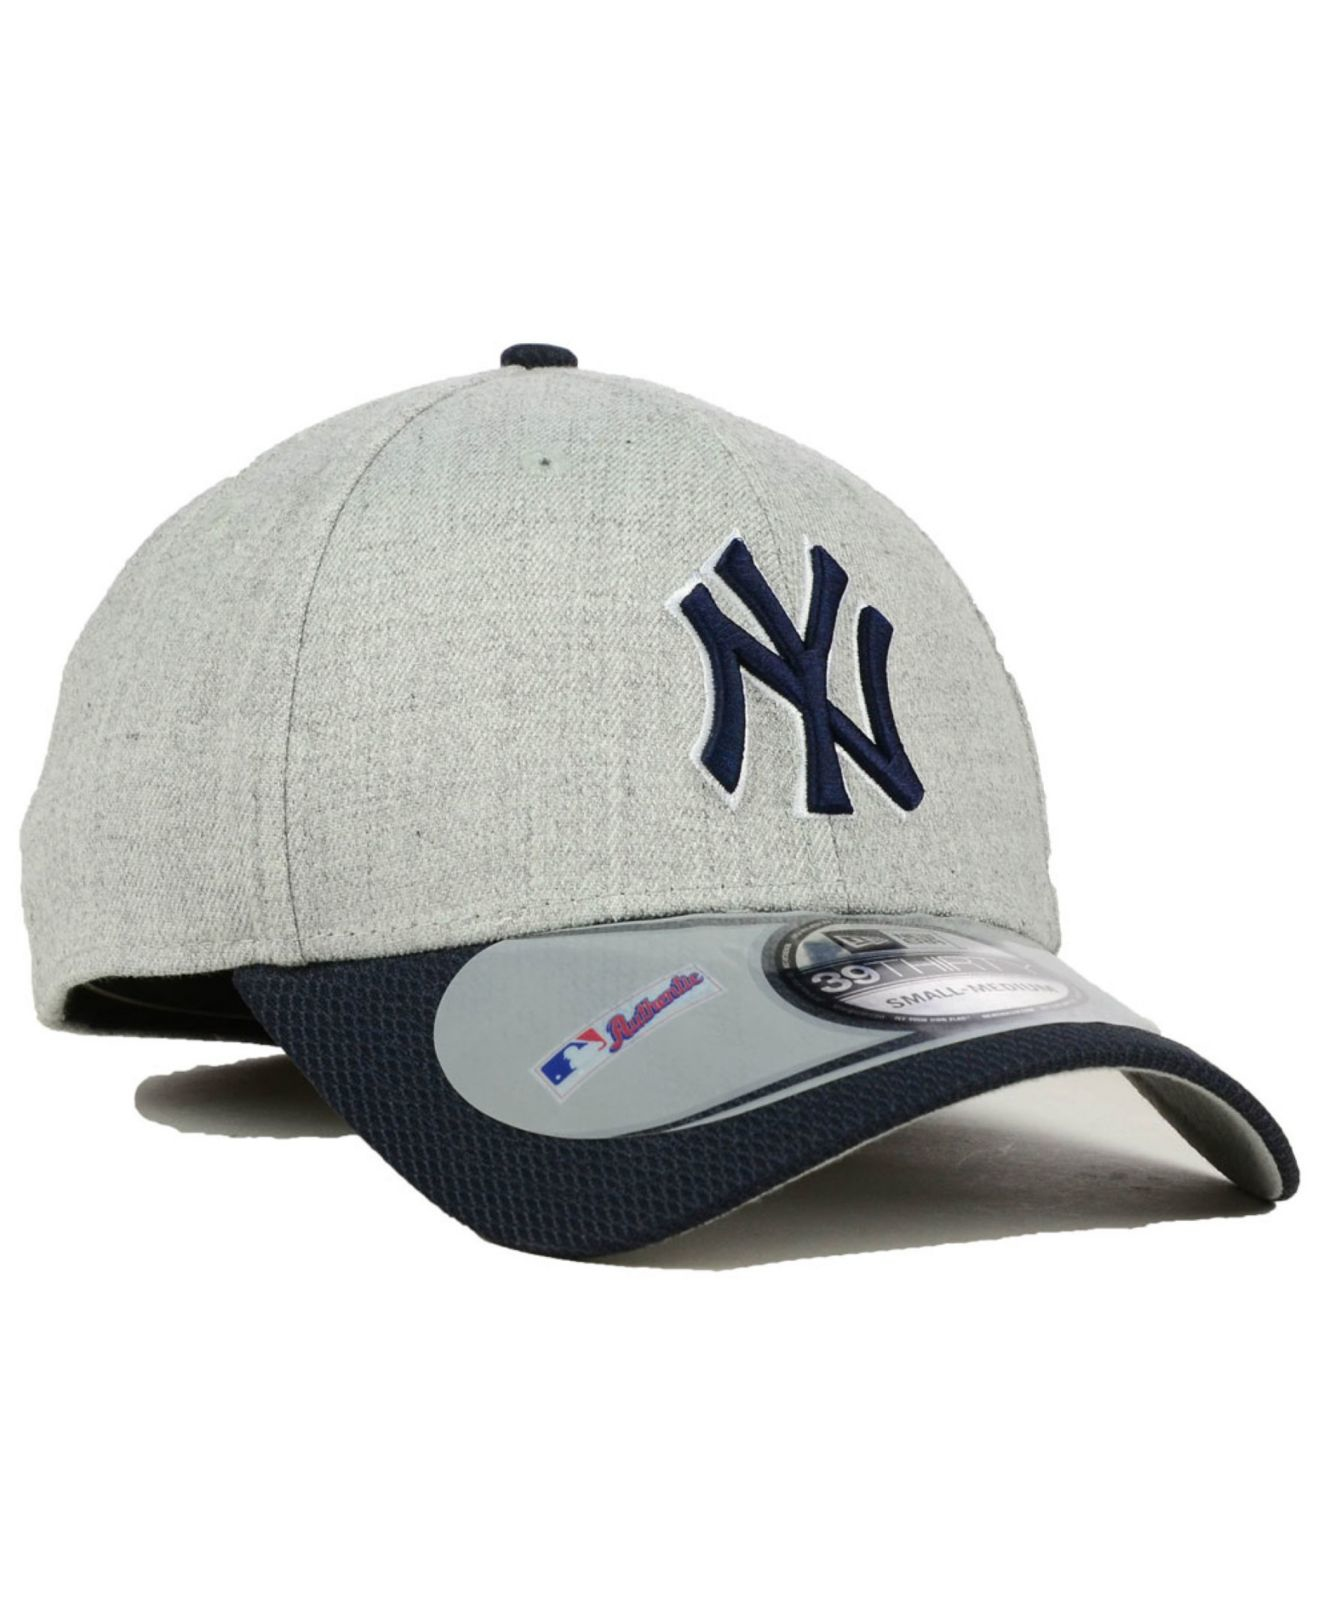 47bf162fad1 Lyst - KTZ New York Yankees Clubhouse 39Thirty Cap in Gray for Men